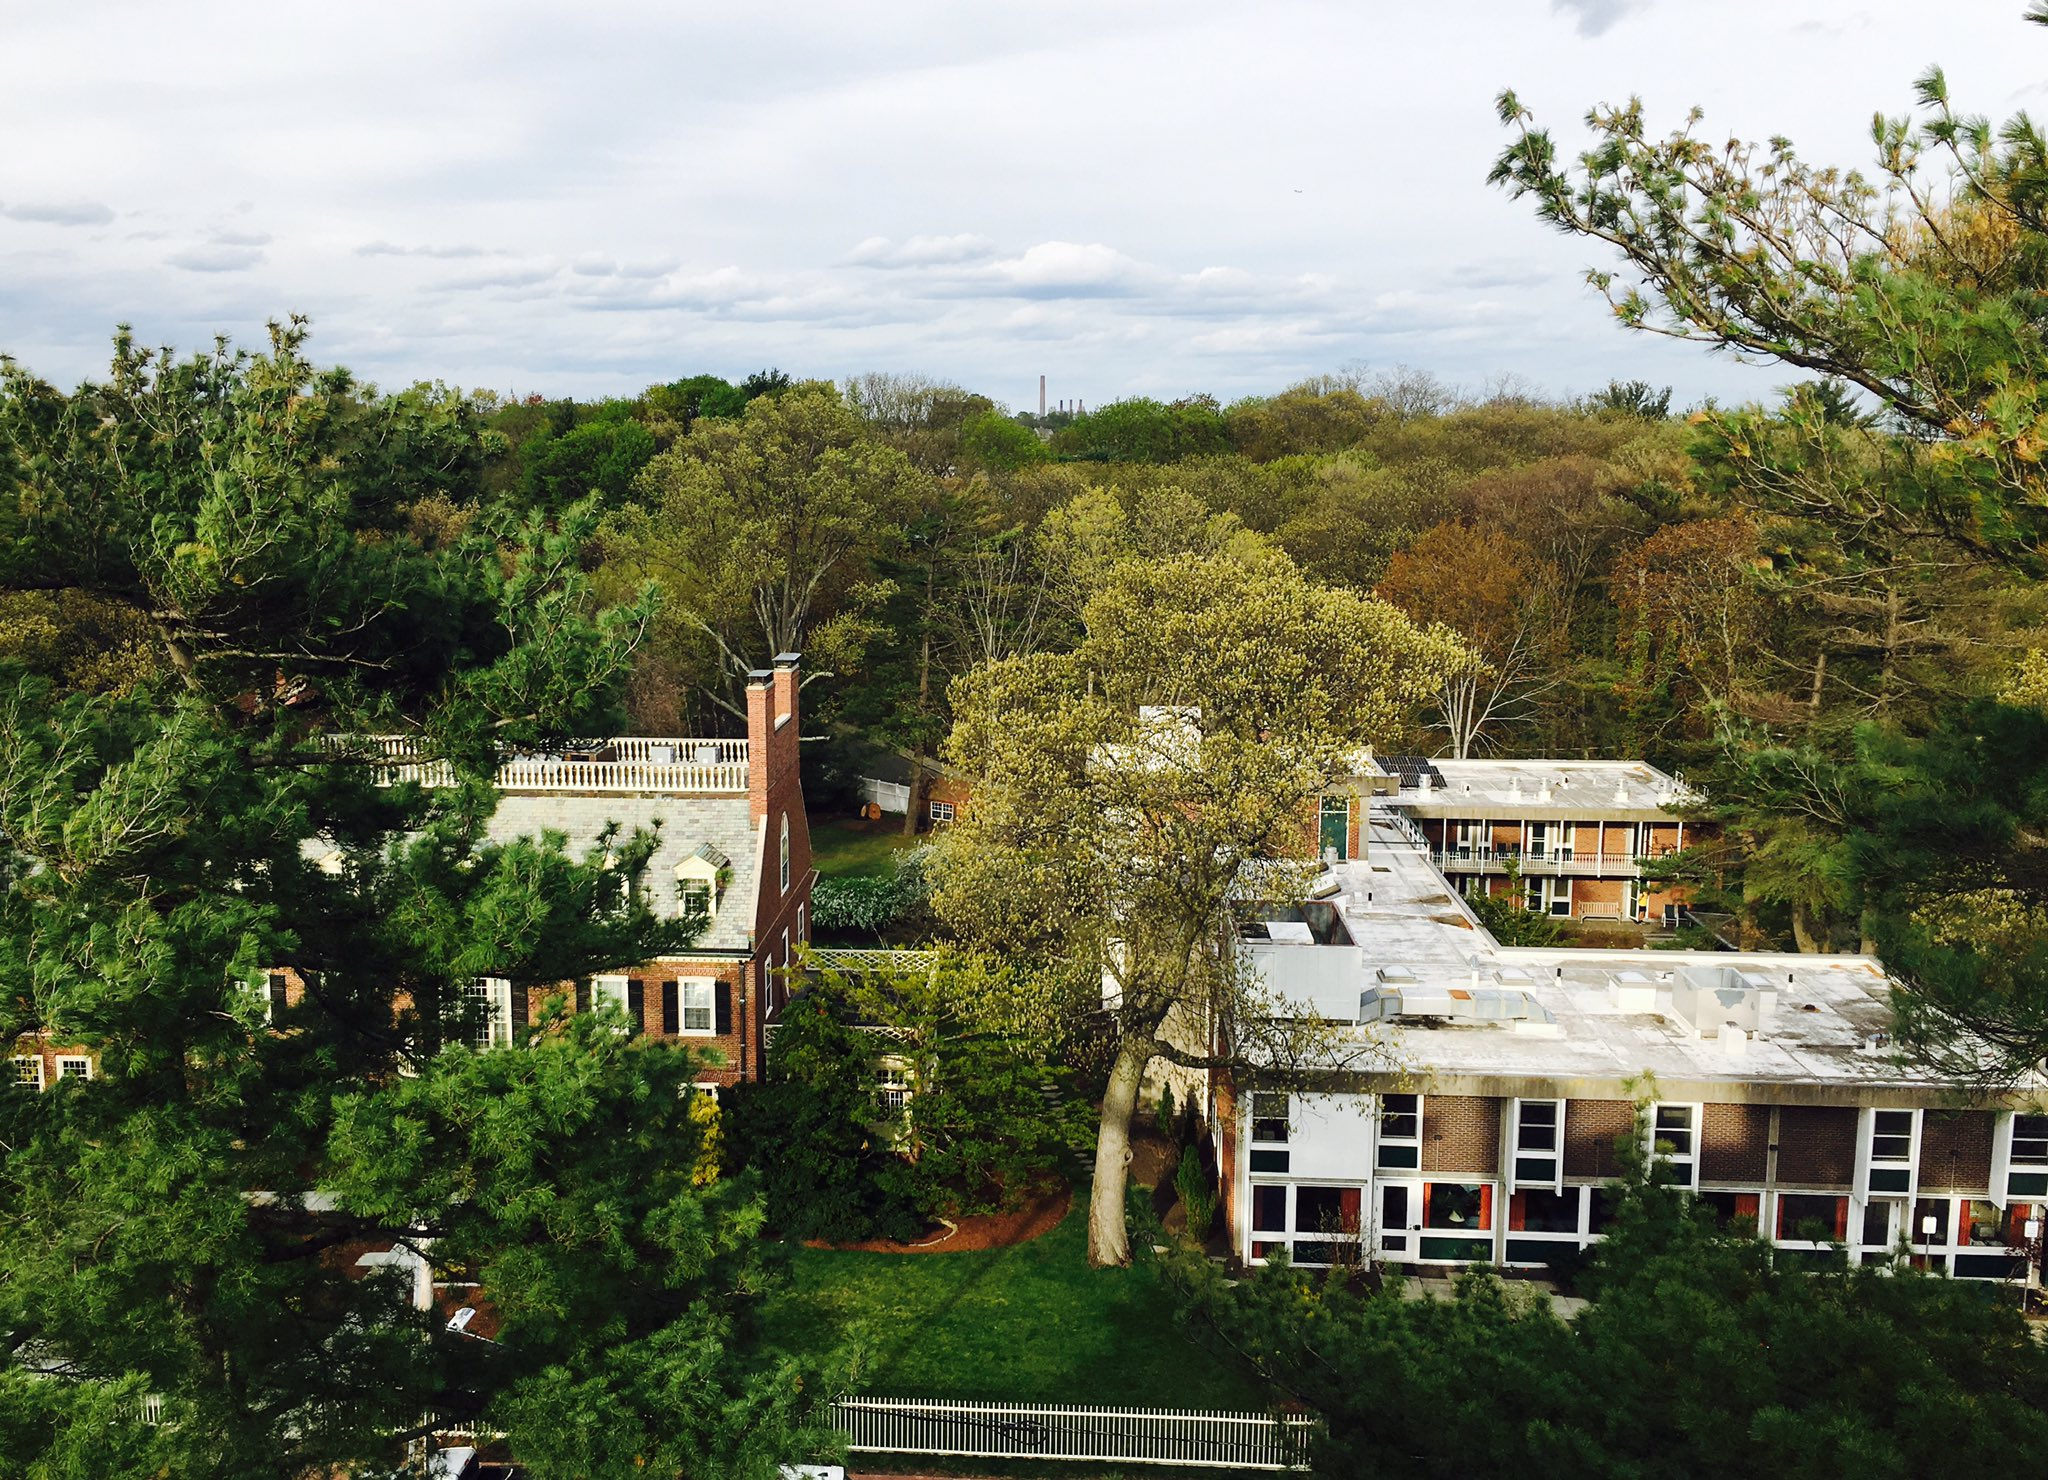 CSWR & Jewett House from Andover rooftop. Thanks for the tour Ralph! #HDS200  Photo courtesy of Bjorn Sorenson MTS '02 https://t.co/WZLOzzeBy2